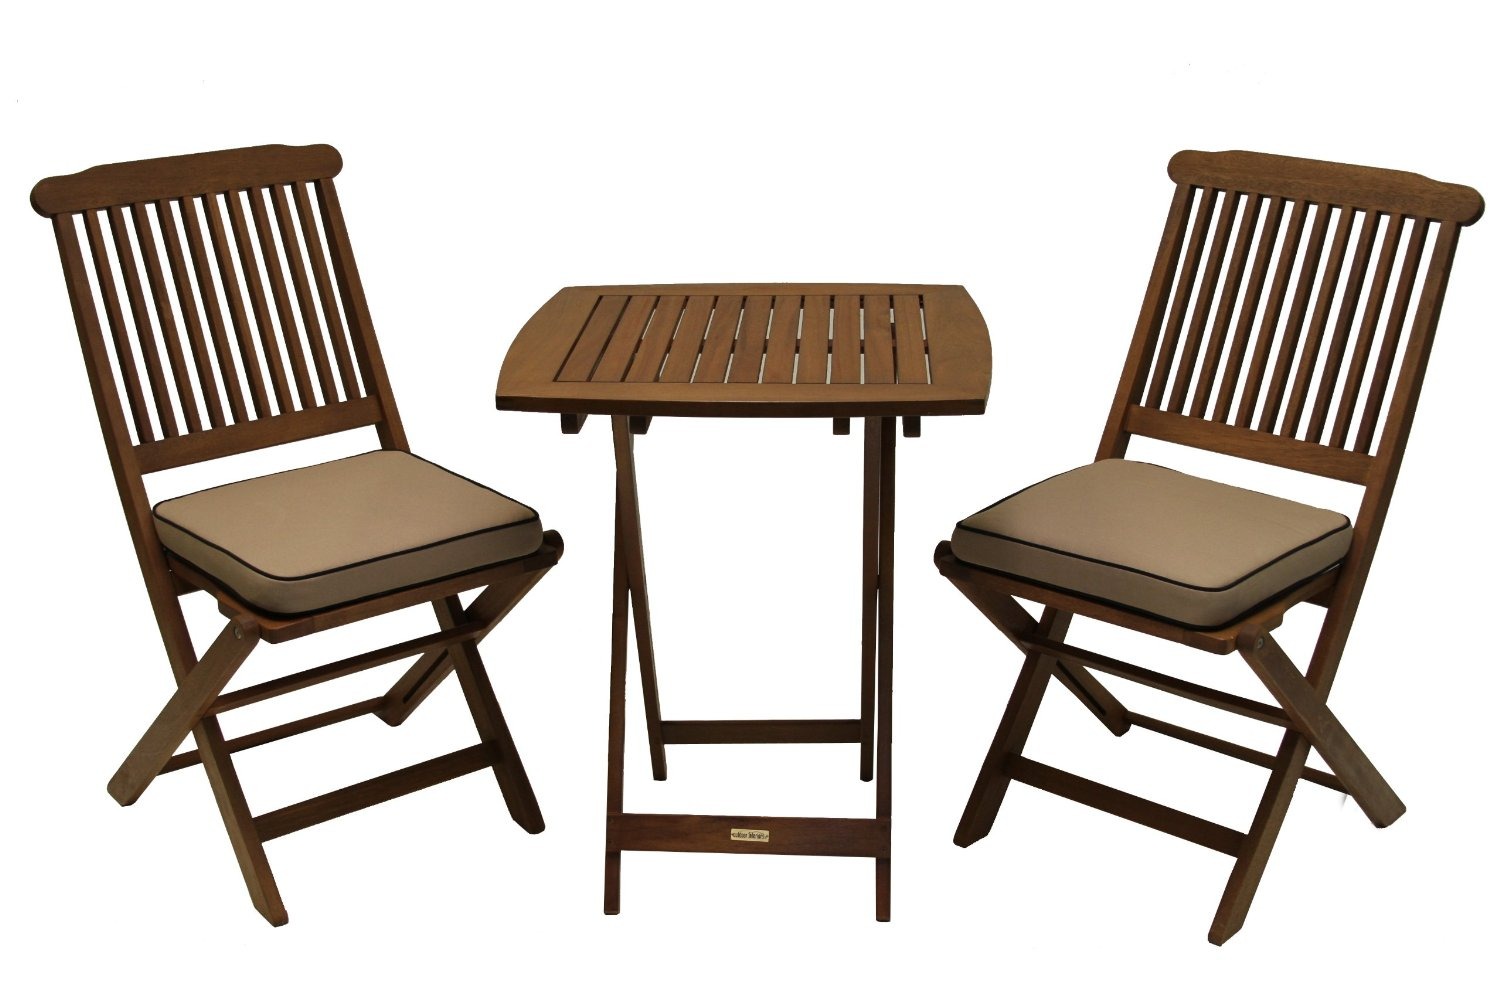 Garden Furniture Table And Chairs patio bistro chairs ascot 2 seater bistro patio furniture set